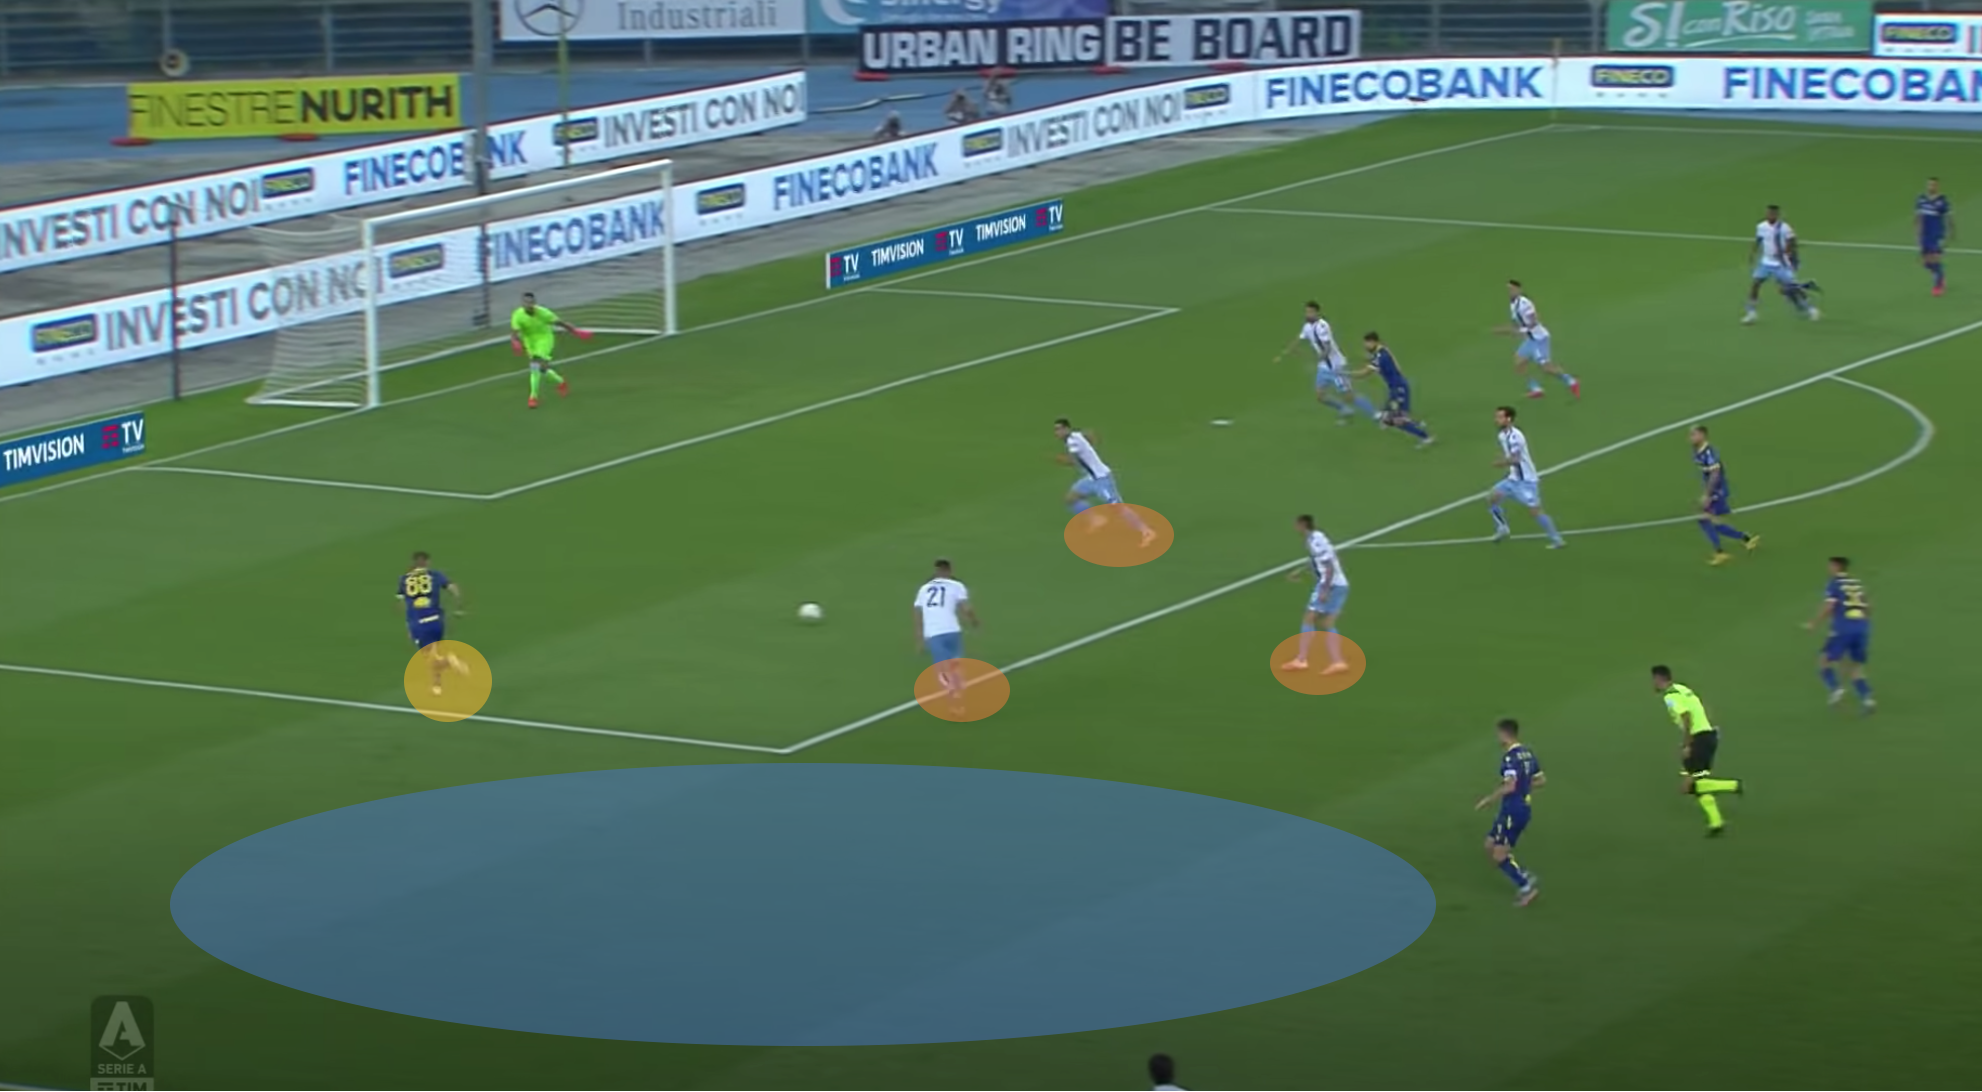 Serie A 2020/21: Lazio vs Inter - tactical preview tactics